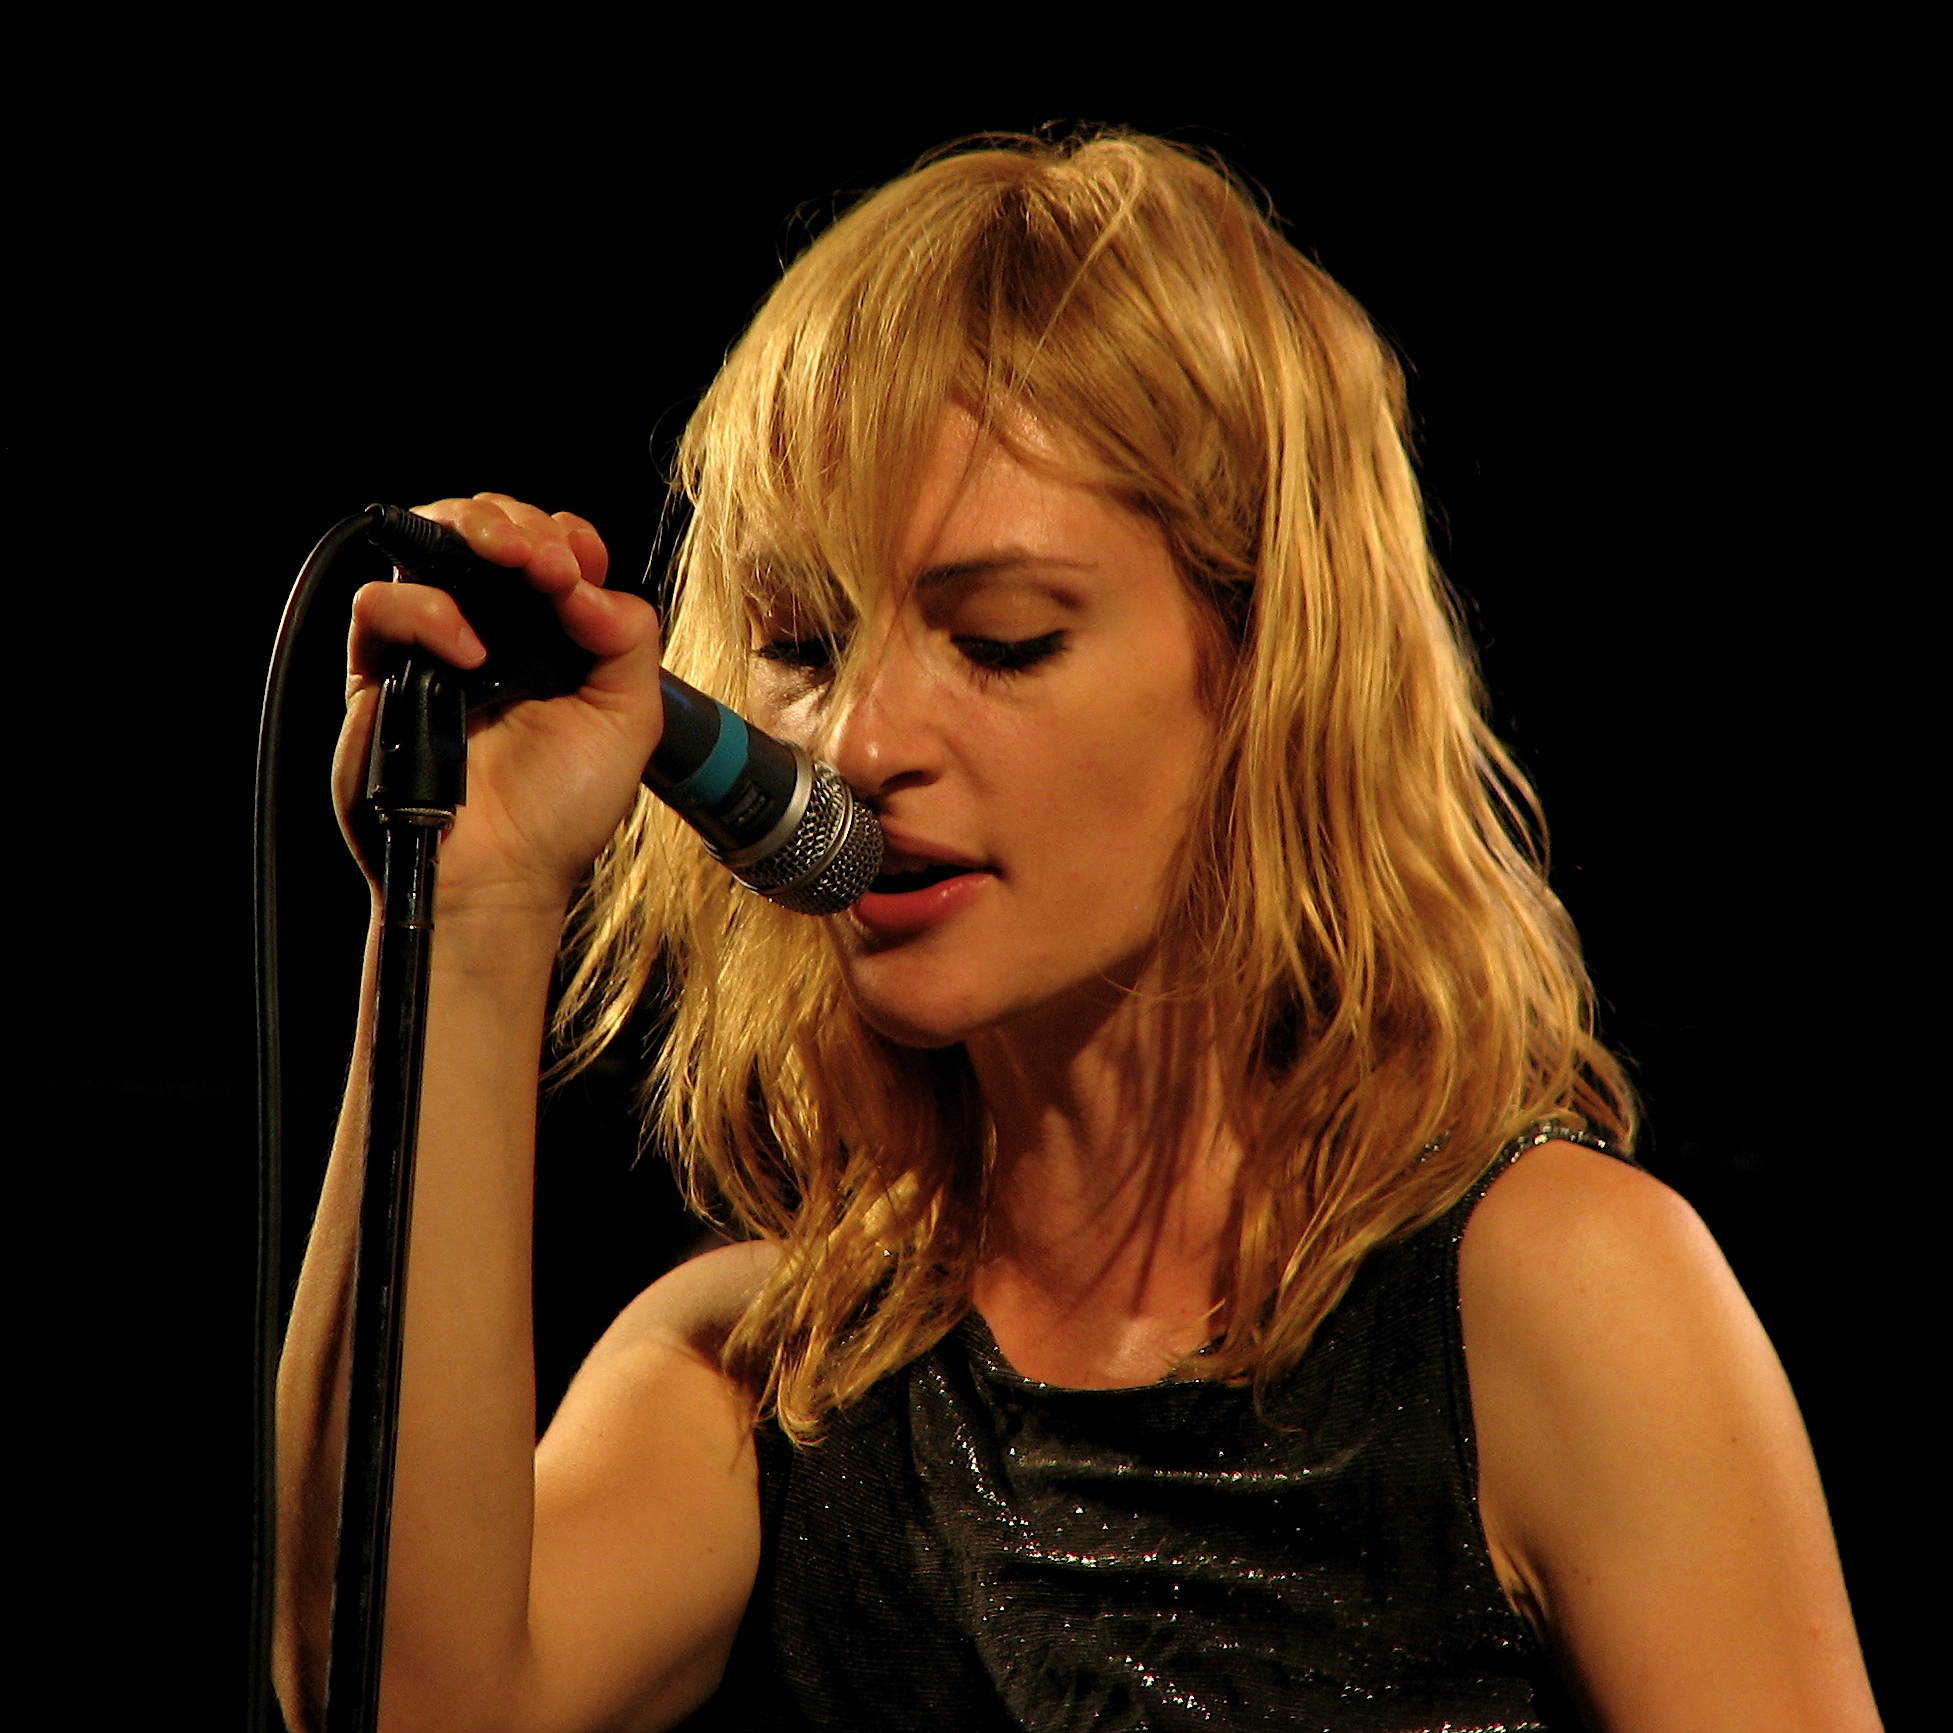 emily haines height